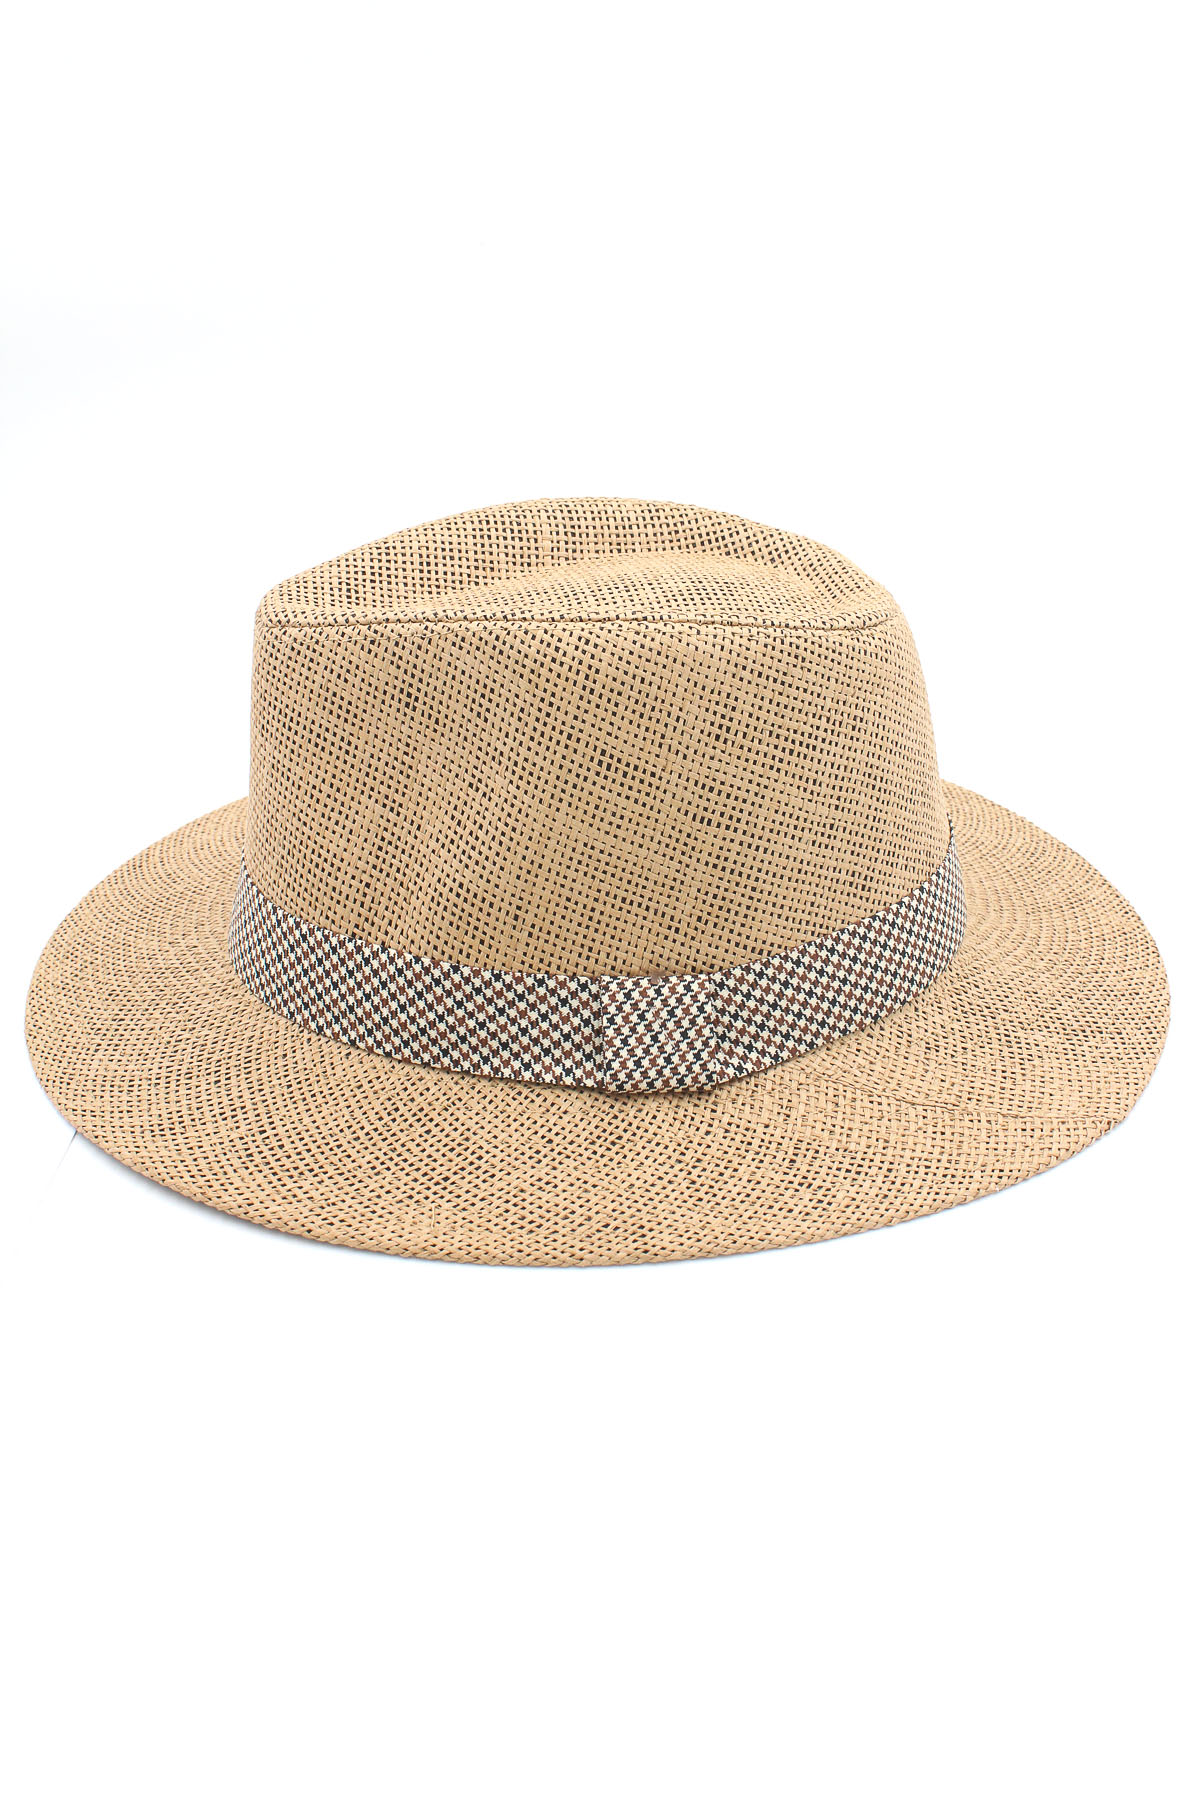 Paper Hat with Houndstooth Print Detail - Hats